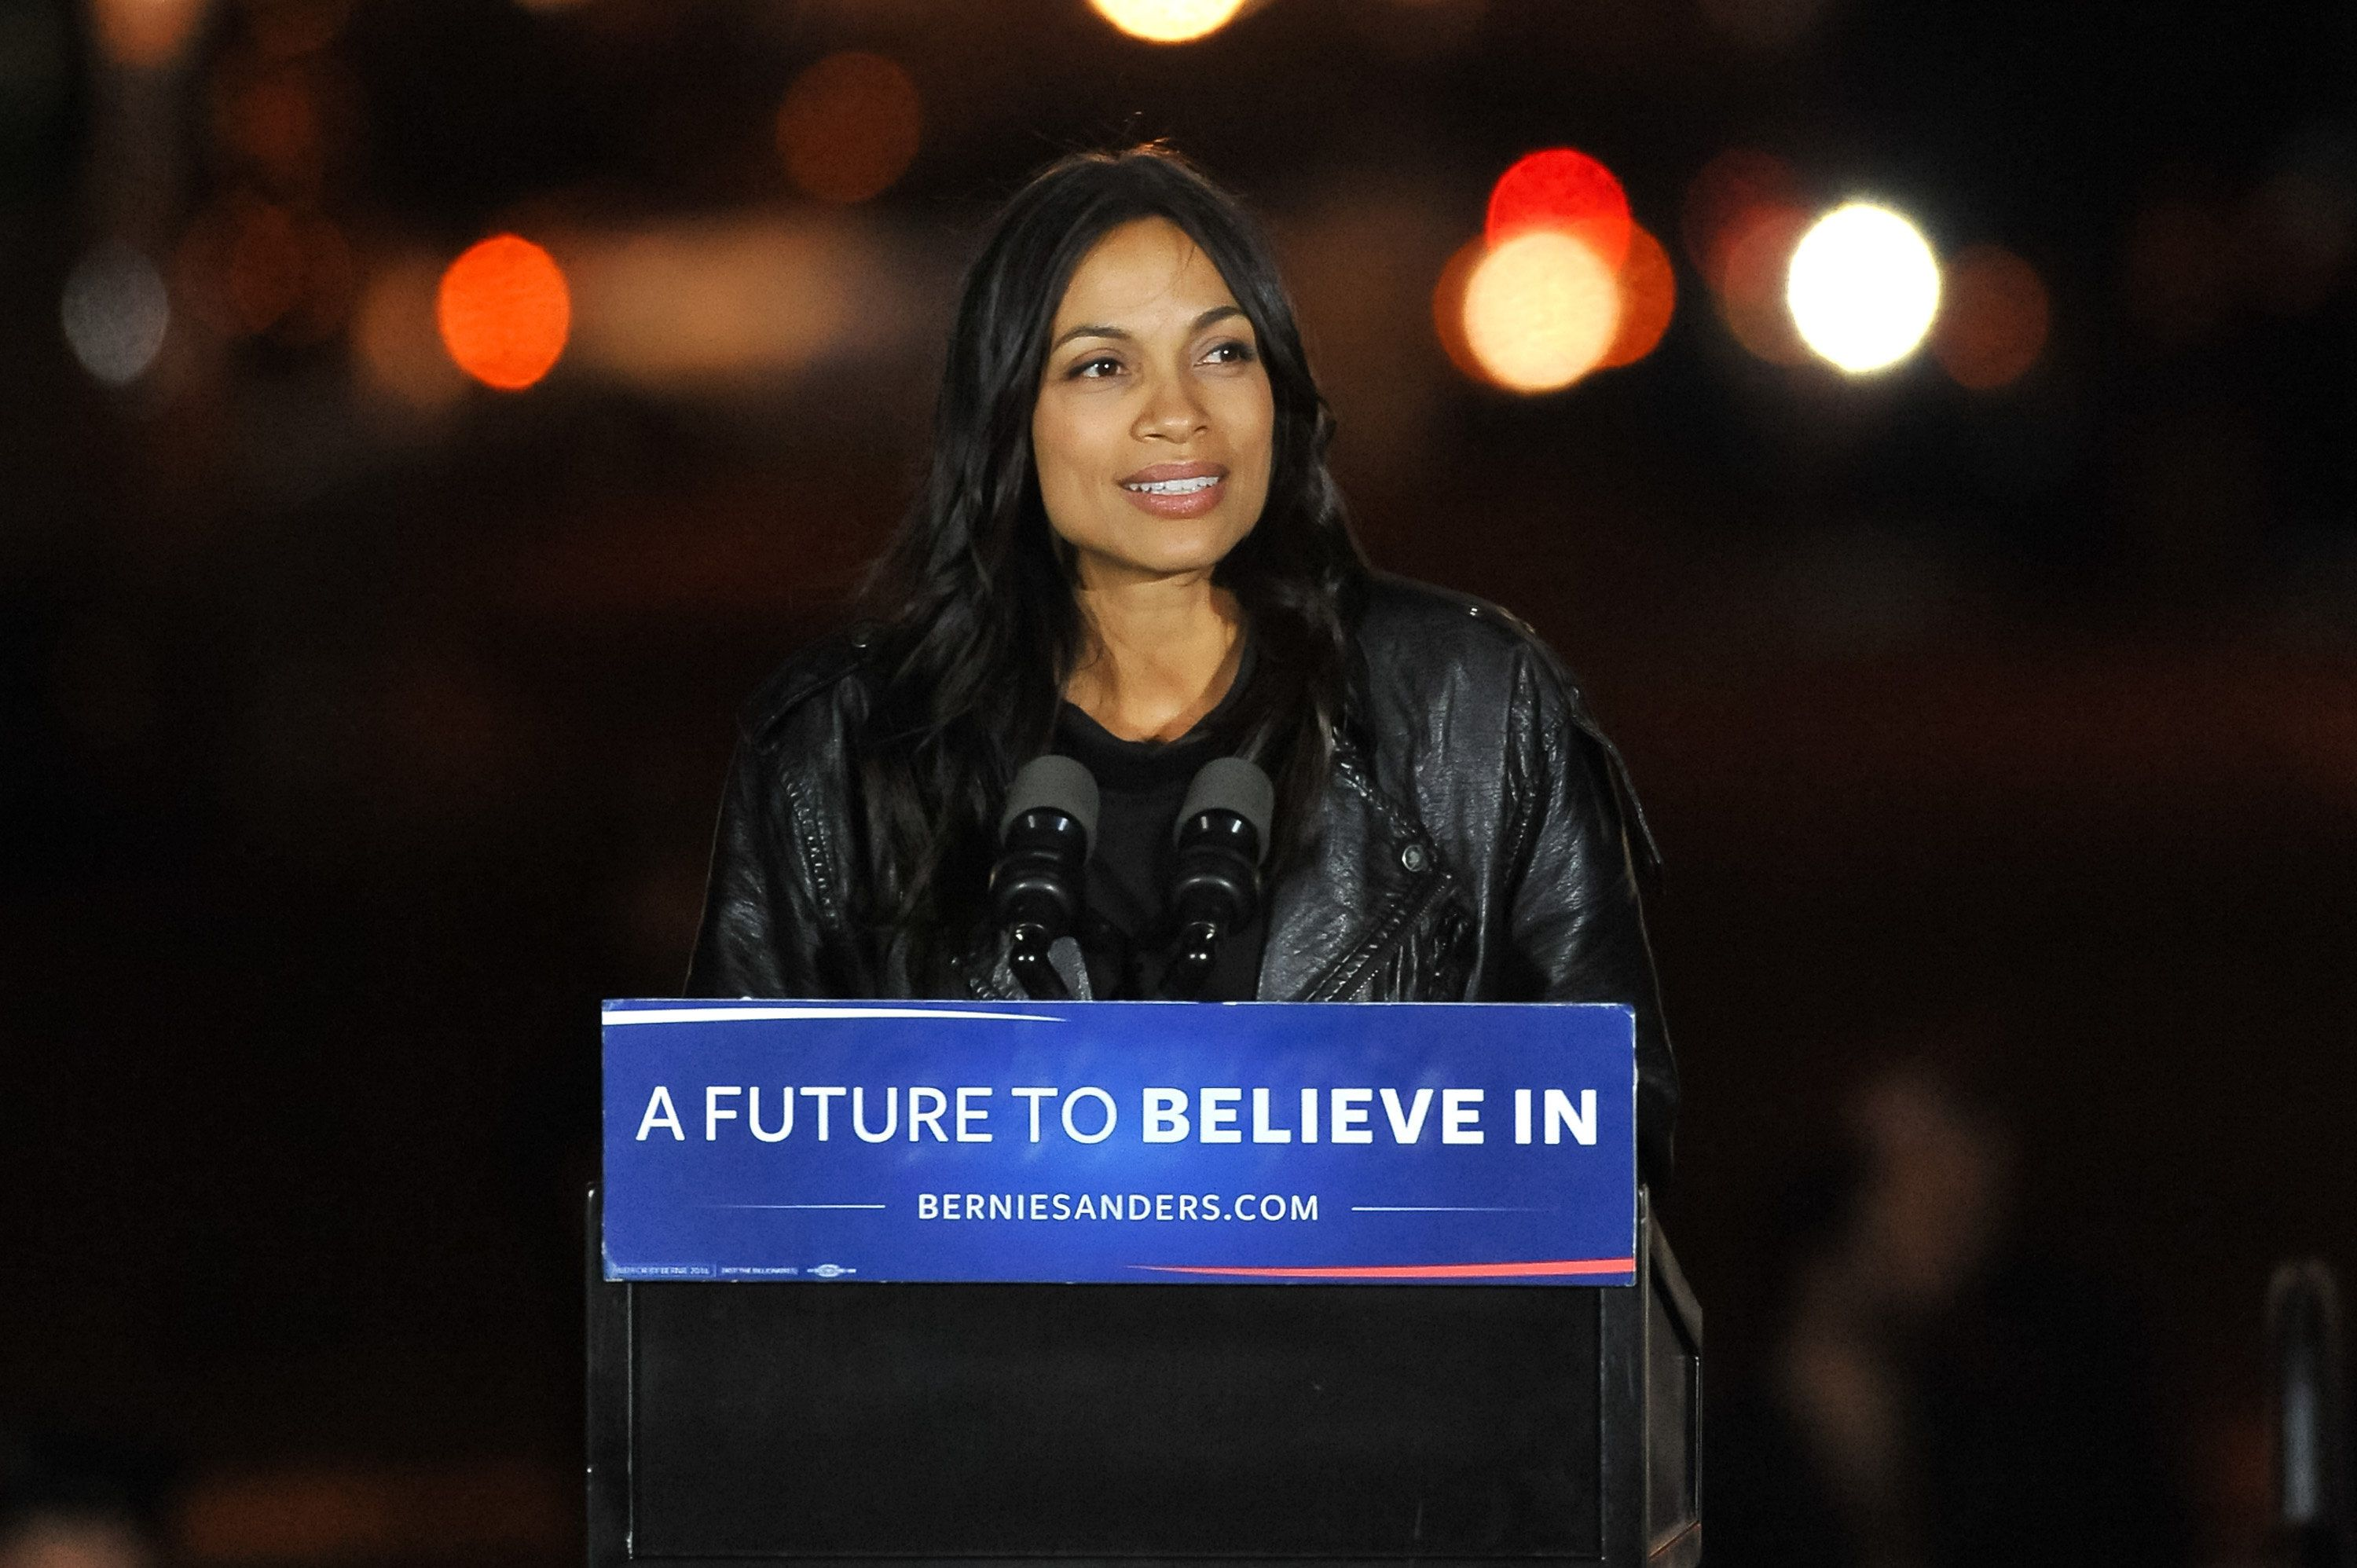 NEW YORK, NEW YORK - APRIL 13:  Rosario Dawson speaks onstage at a campaign event for Democratic presidential candidate U.S. Senator Bernie Sanders (not pictured) at Washington Square Park on April 13, 2016 in New York City.  (Photo by D Dipasupil/WireImage)